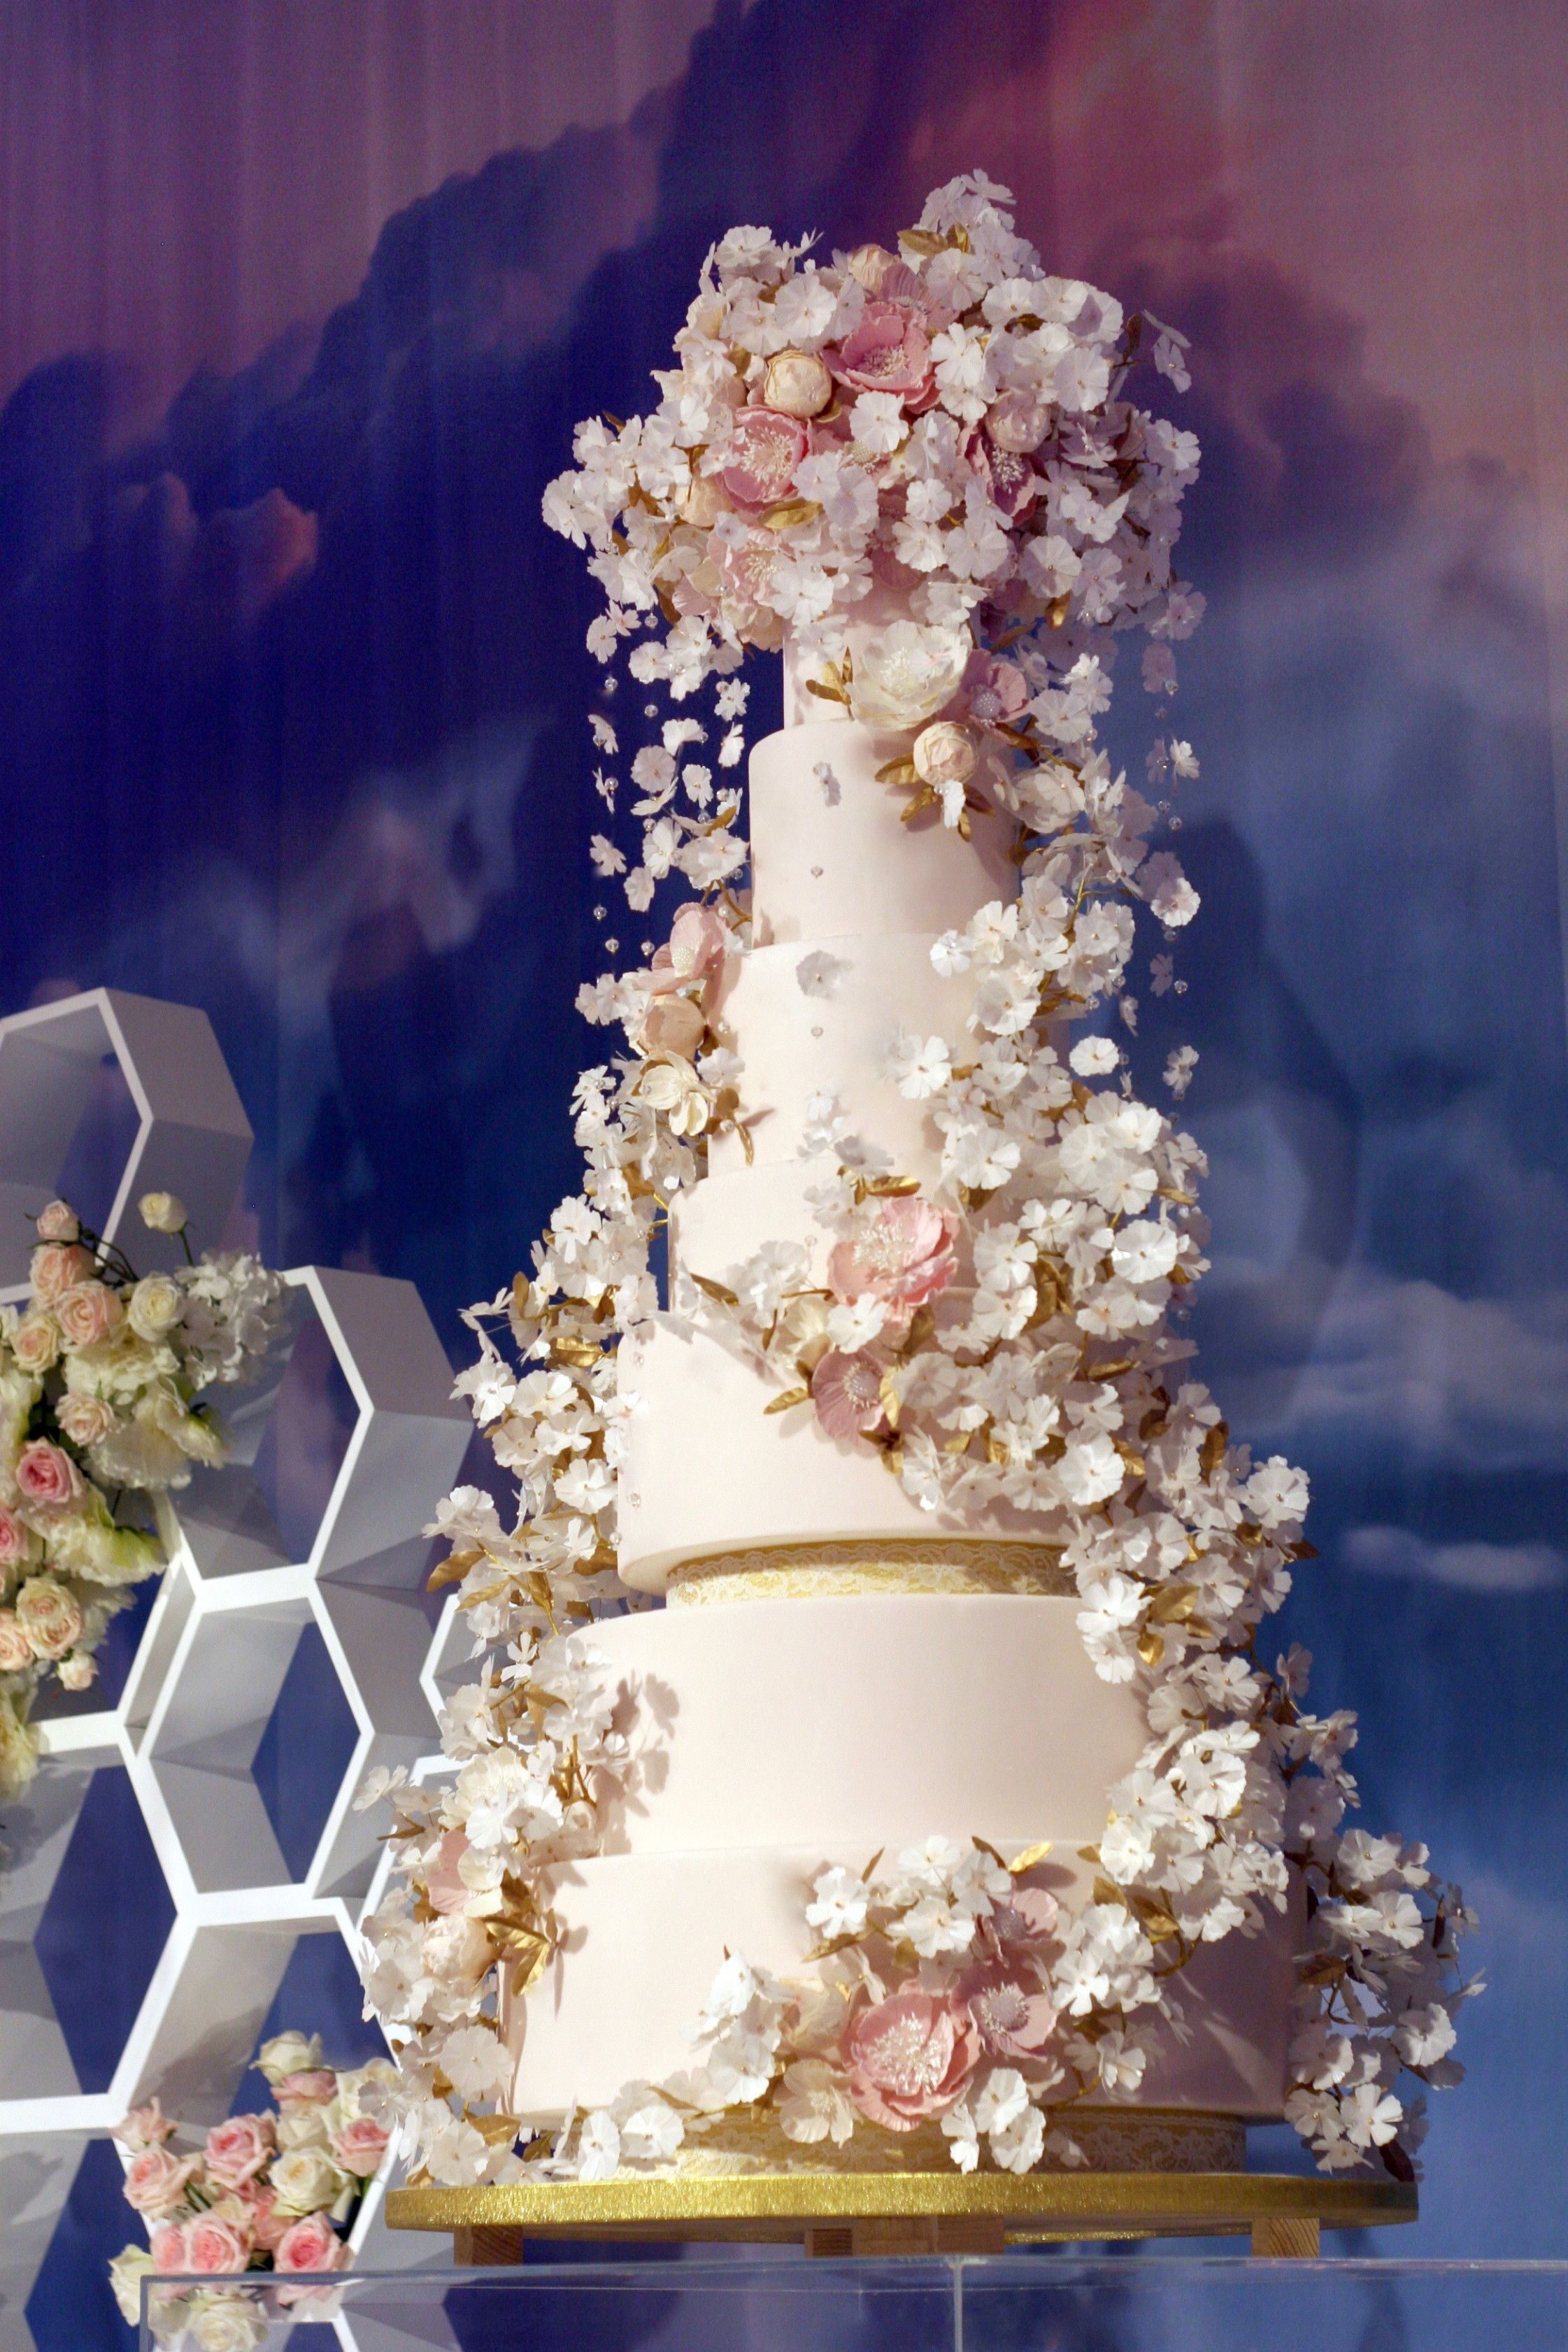 7 Things Nobody Told You About Wedding Cake Cherry Blossom Design Cherry Blossom Wedding Cake Tall Wedding Cakes Gold Wedding Cake